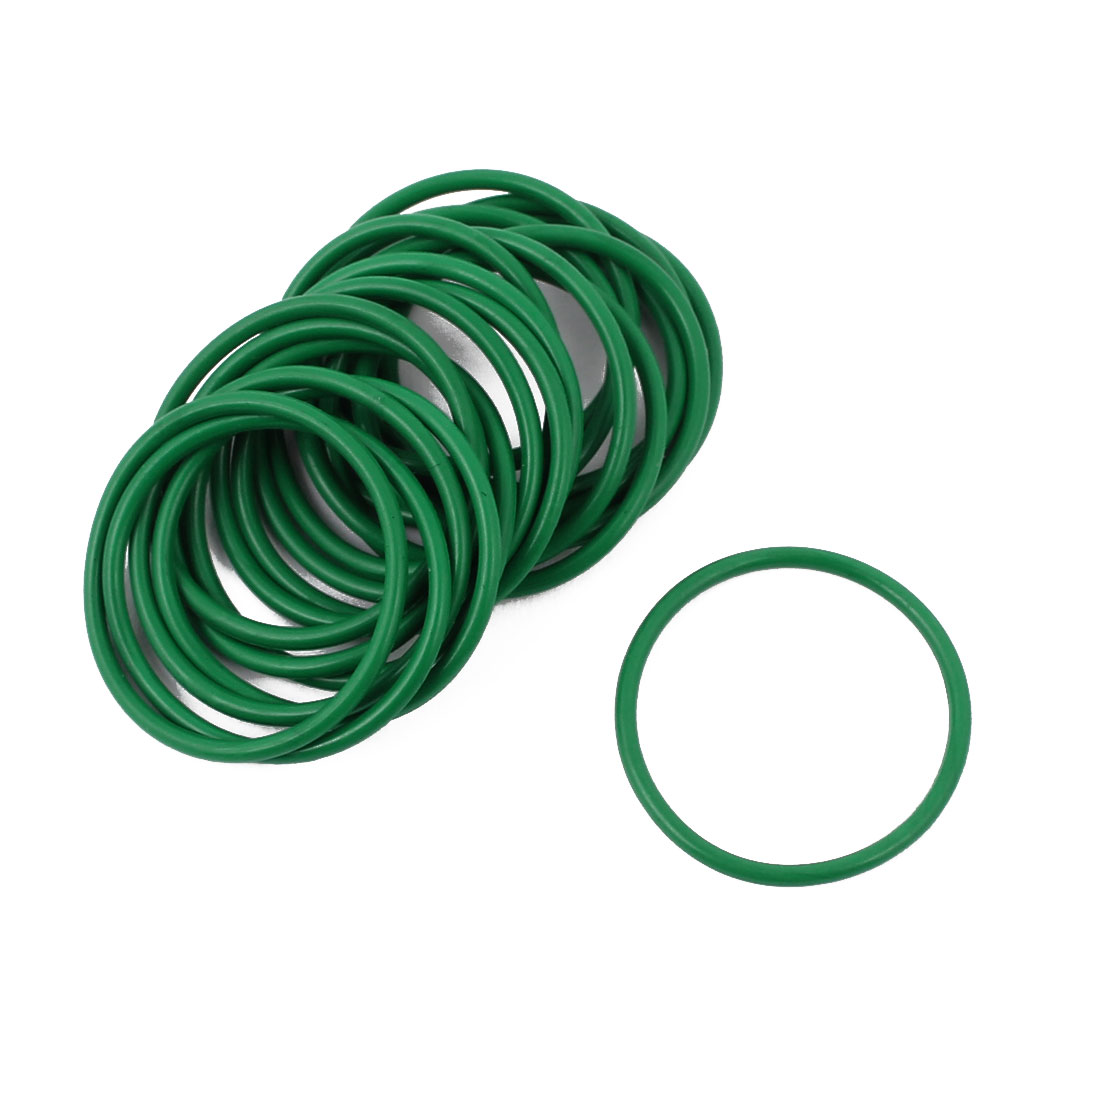 20 Pcs 24 x 1.5mm Oil Resistant Nitrile Rubber O Sealing Ring Nonpoisonus Green